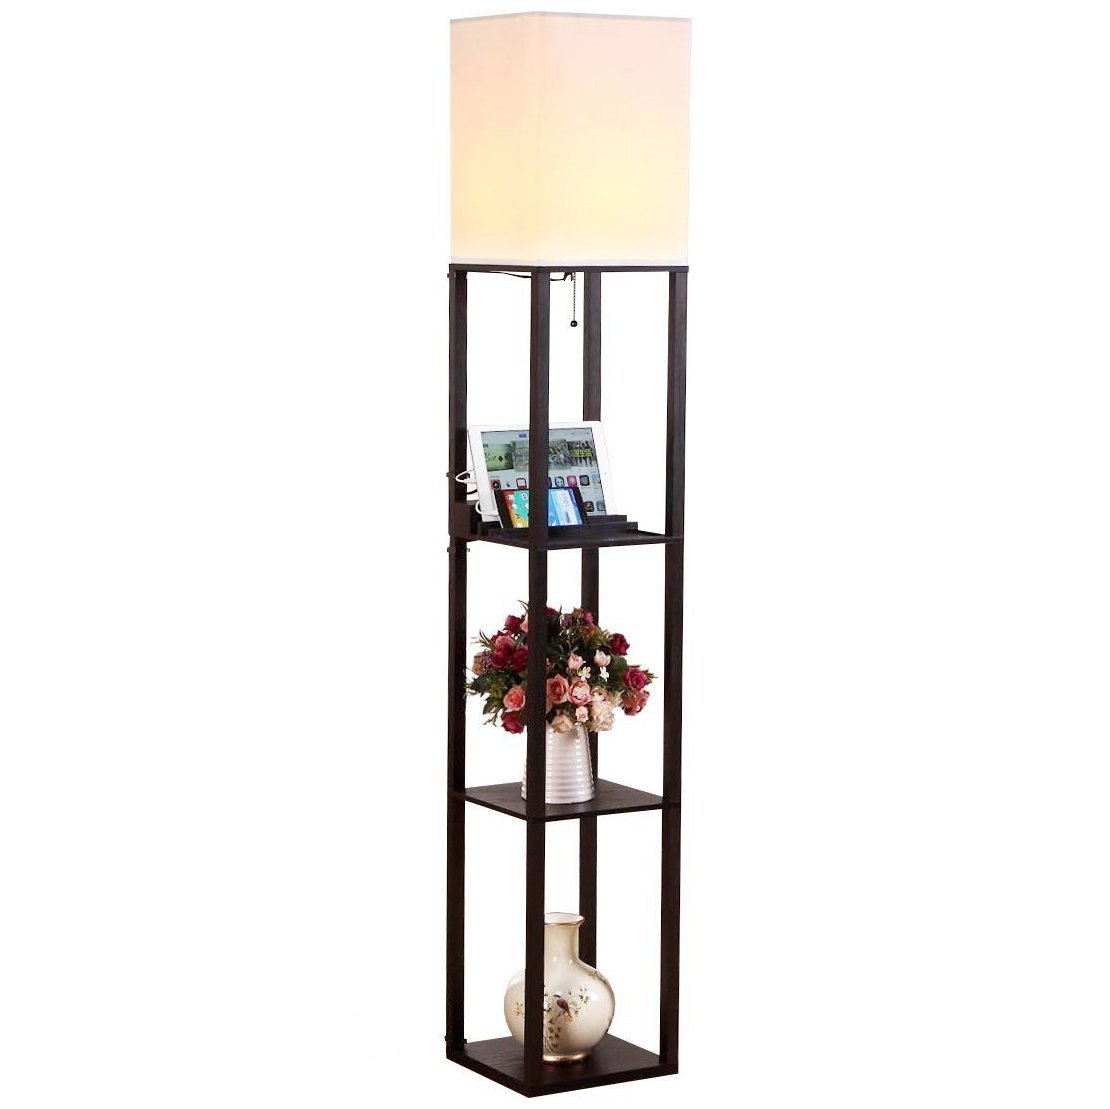 Brightech Maxwell LED USB Shelf Floor Lamp Modern Asian Style Standing Lamp with Soft Diffused Uplight Wooden Frame Convenient Open Box Display Shelves, 2 USB Ports and Electric Outlet Black